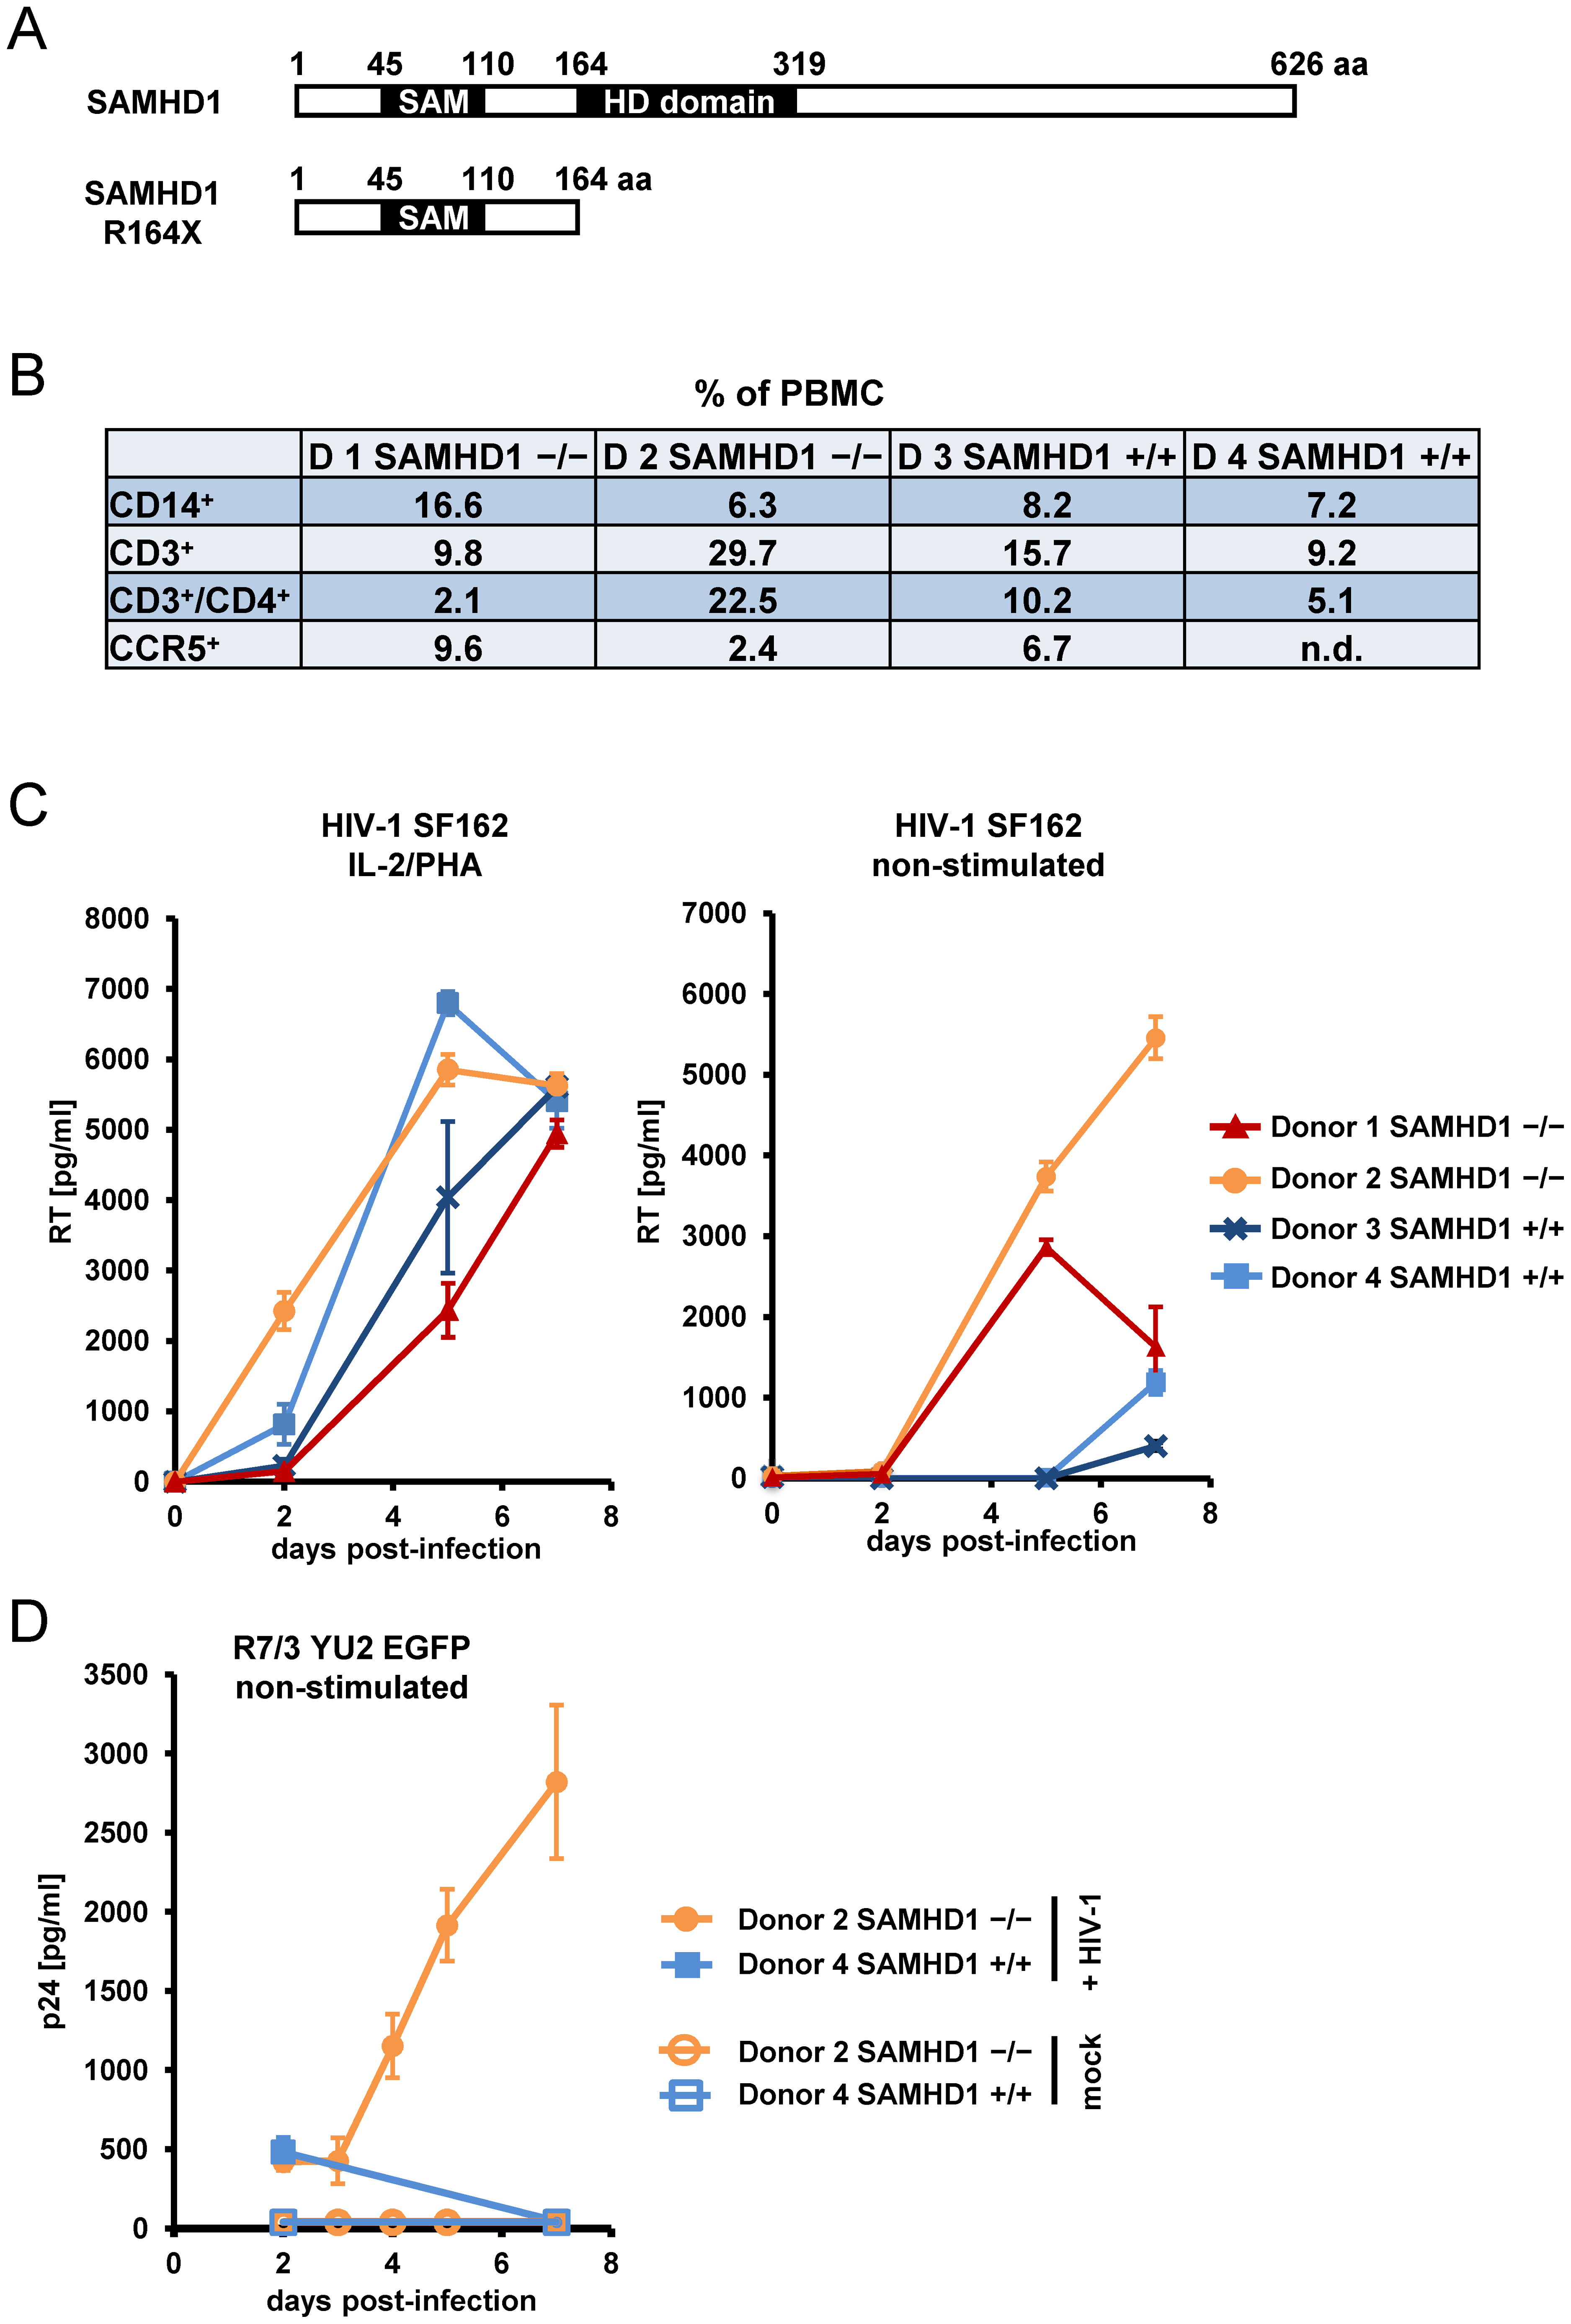 PBMC from AIcardi-Goutières syndrome patients homozygous for SAMHD1 mutation are highly susceptible for spreading HIV-1 replication.